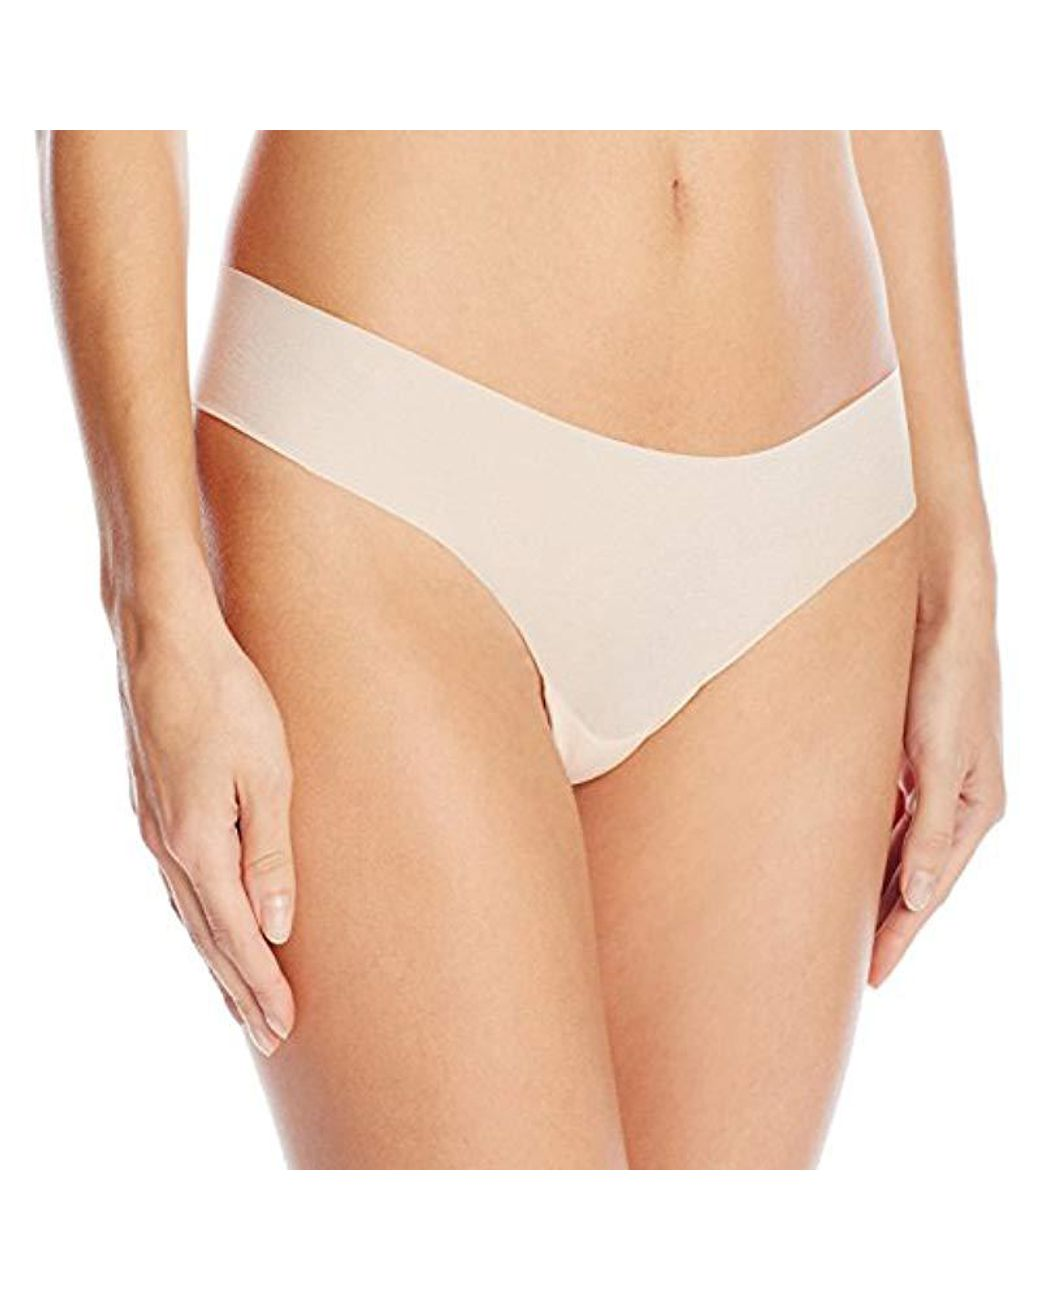 Cosabella Womens Aire Low Rise Thong 2 Pack Set | eBay